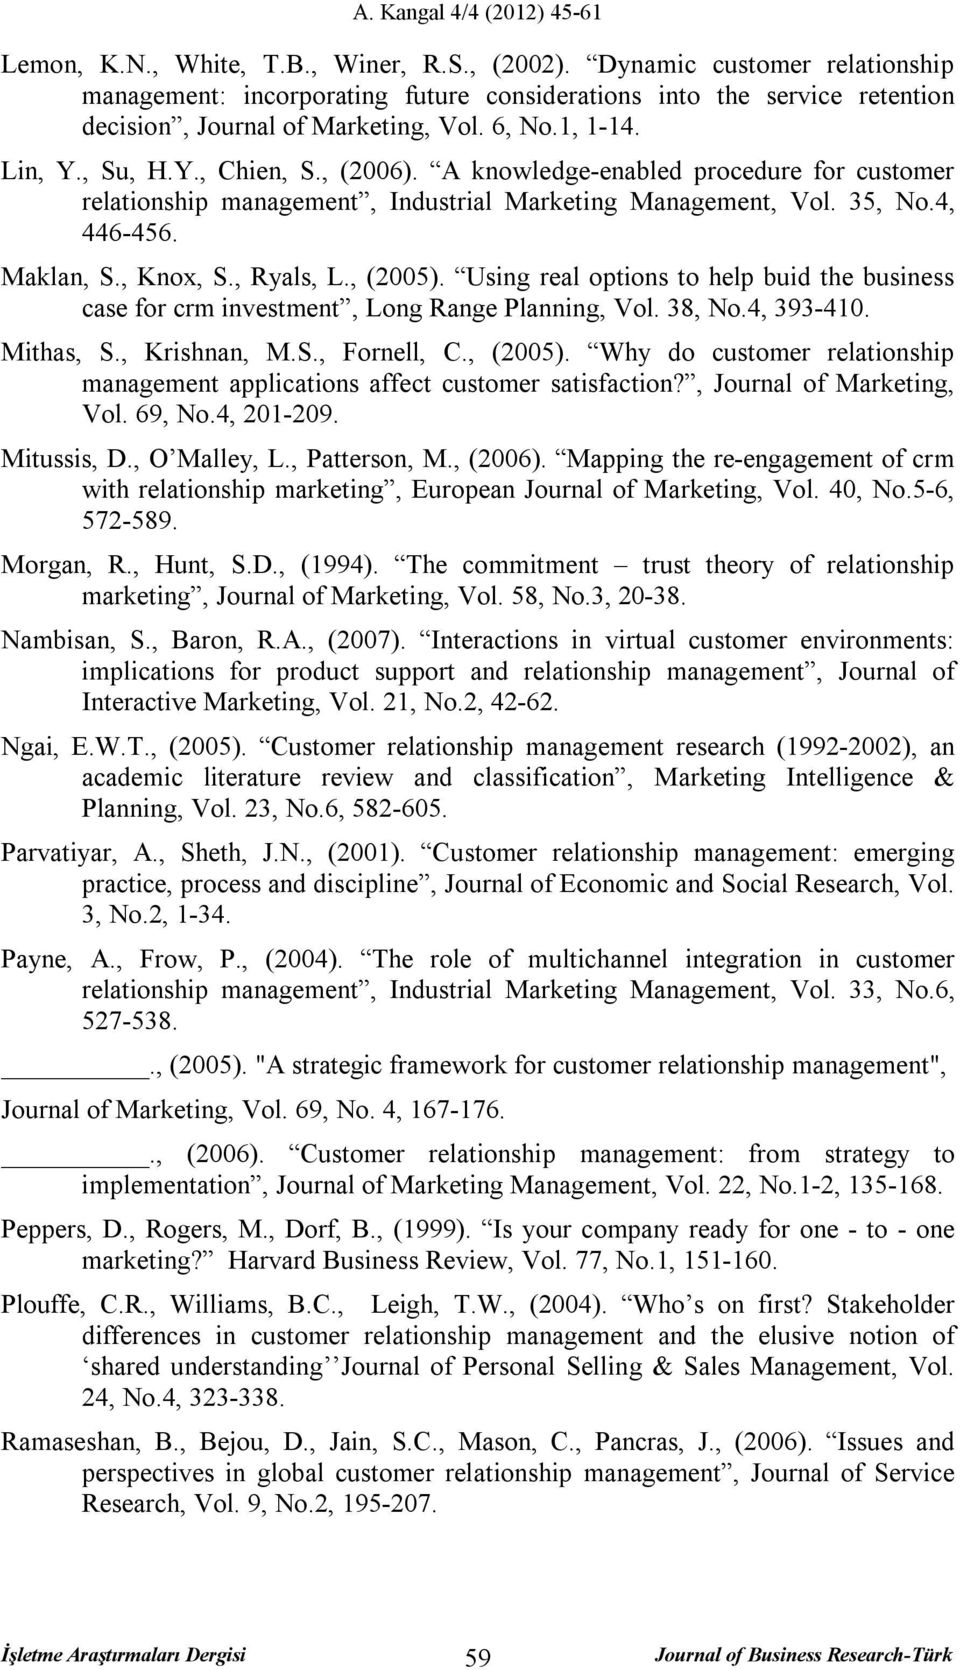 , Ryals, L., (2005). Using real options to help buid the business case for crm investment, Long Range Planning, Vol. 38, No.4, 393-410. Mithas, S., Krishnan, M.S., Fornell, C., (2005). Why do customer relationship management applications affect customer satisfaction?